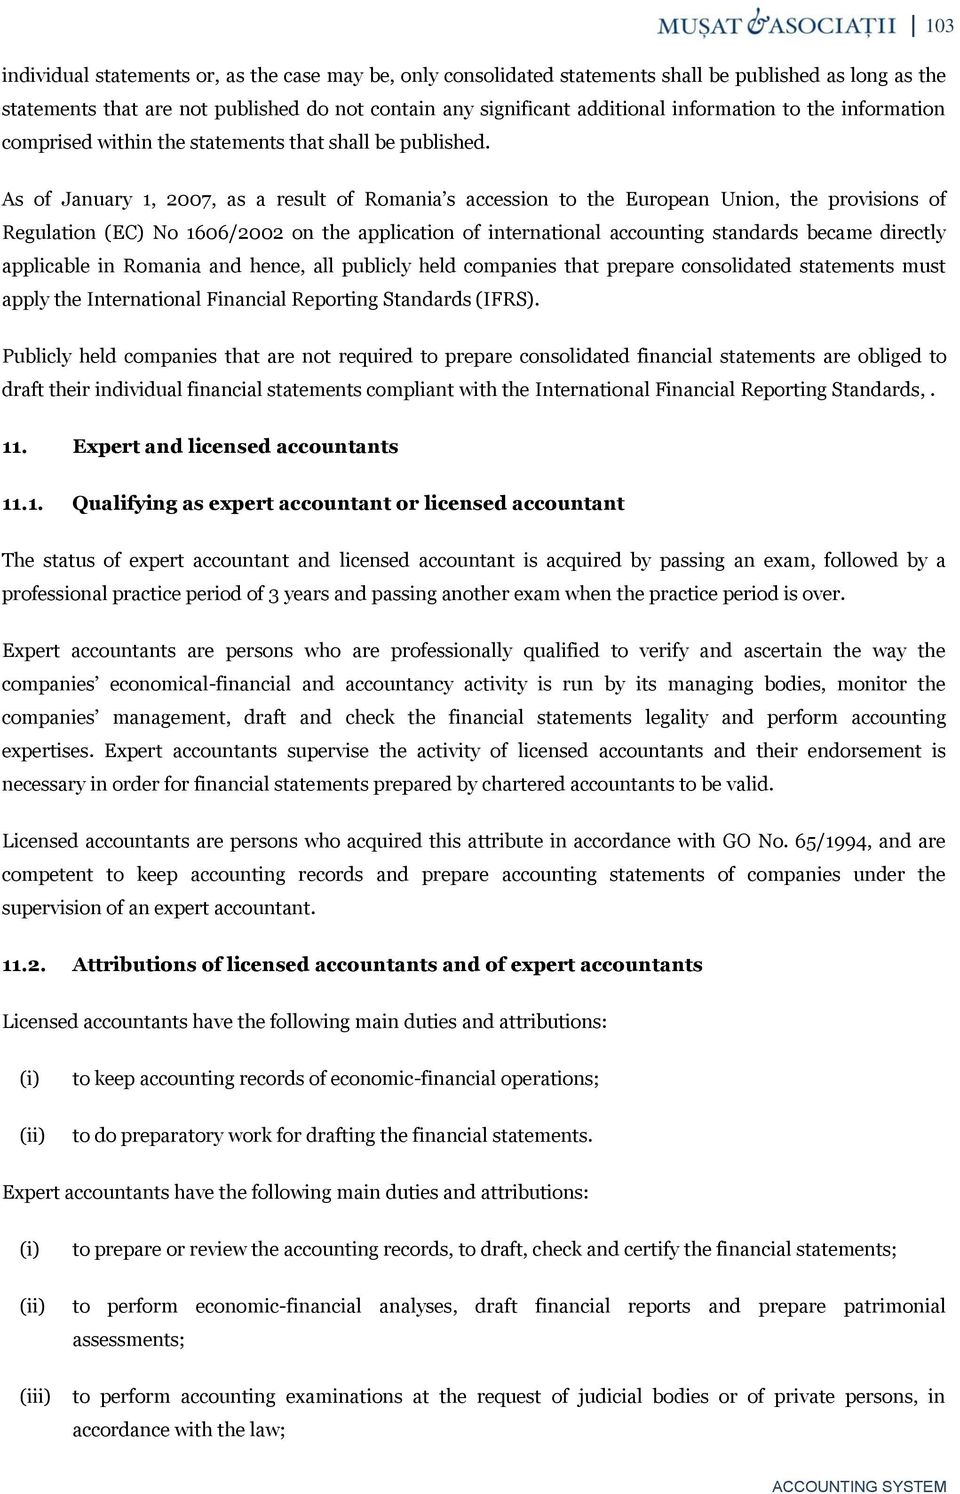 As of January 1, 2007, as a result of Romania s accession to the European Union, the provisions of Regulation (EC) No 1606/2002 on the application of international accounting standards became